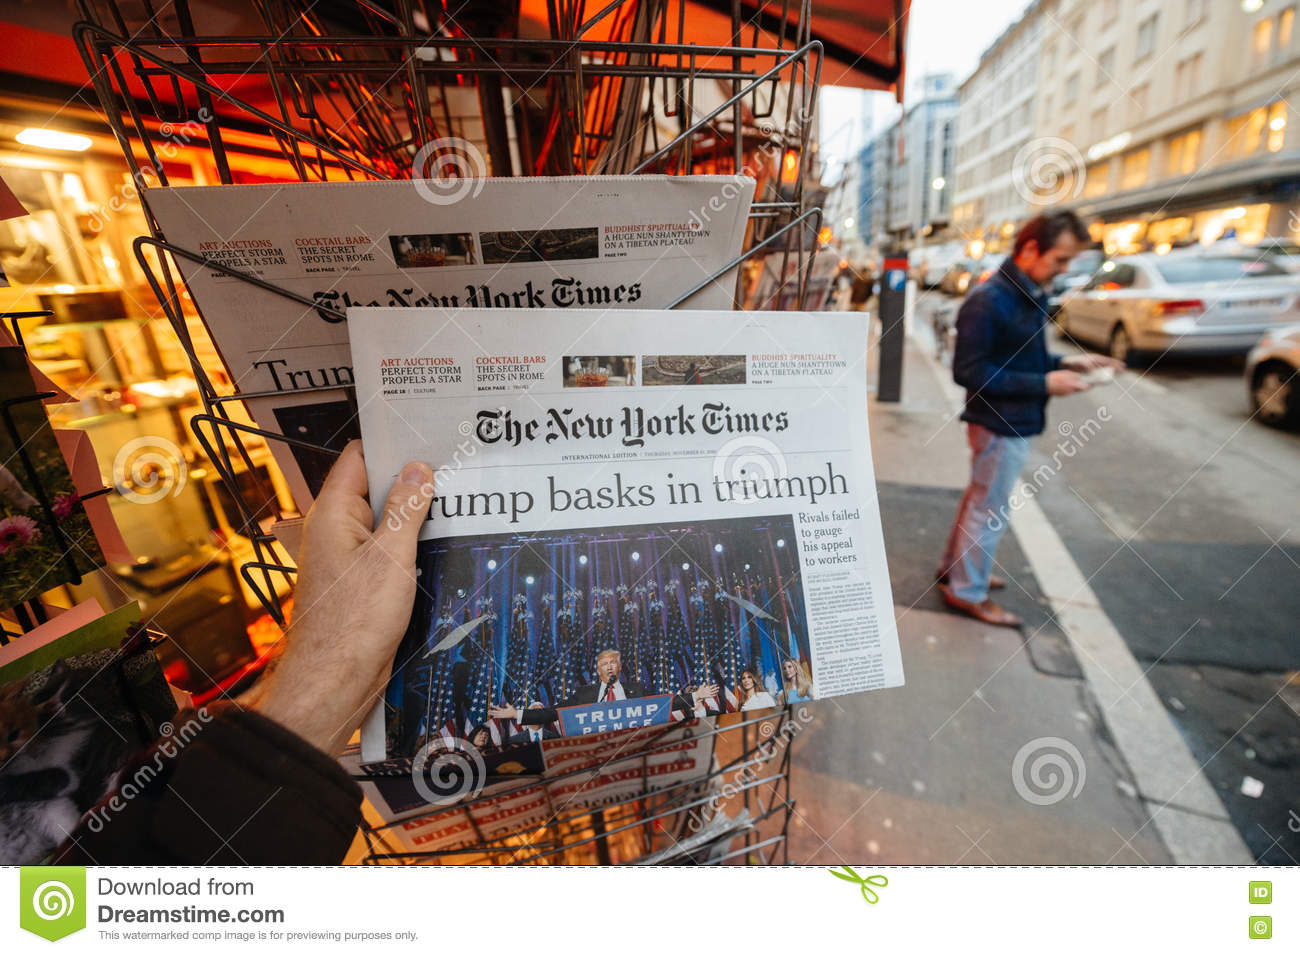 The New York Times Donald Trump new USA president